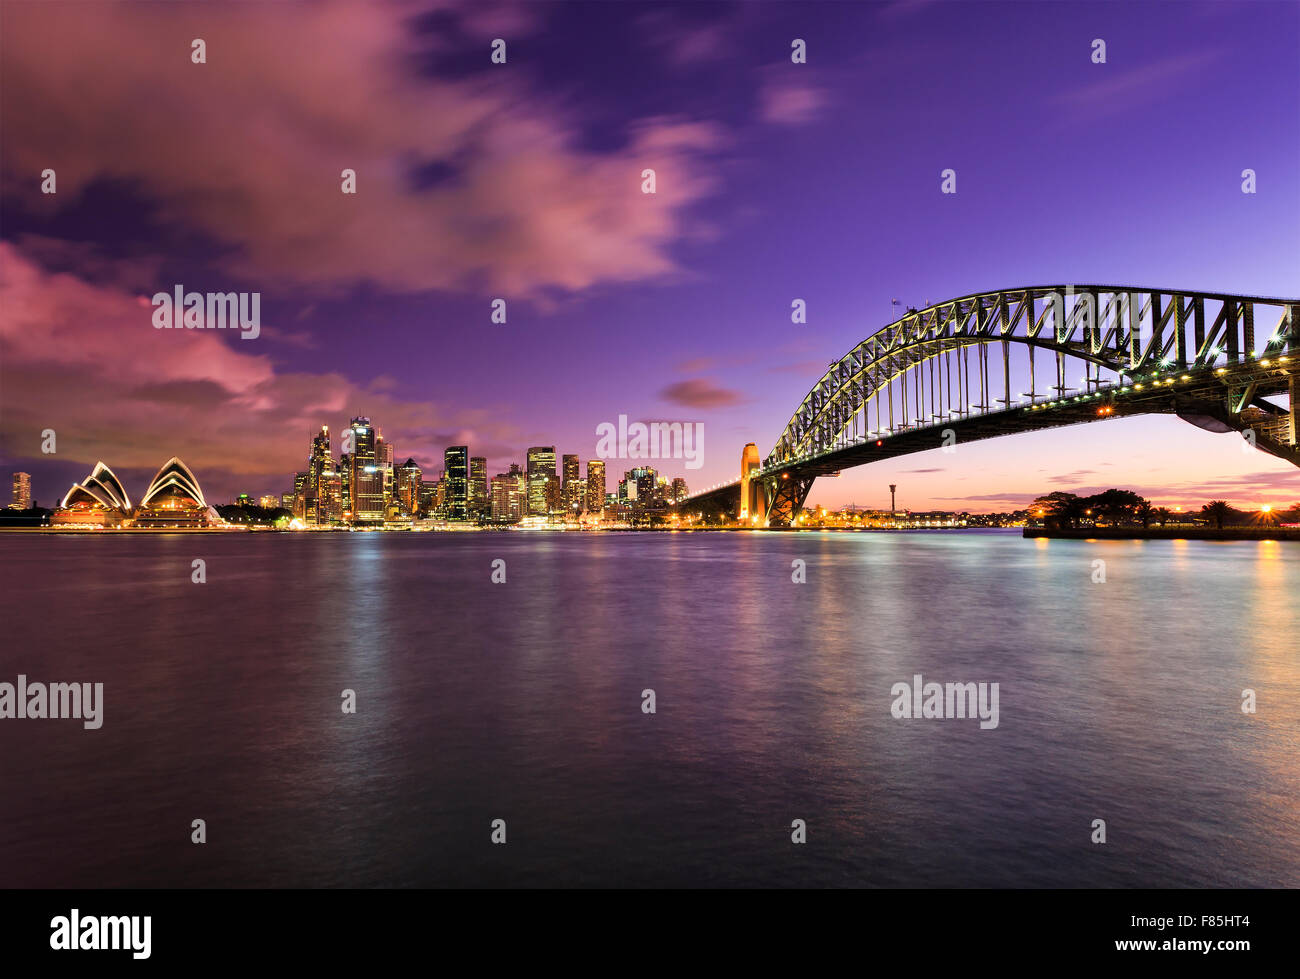 main Sydney landmarks at sunset across harbour with blurred clouds and water reflecting bright lights of colourful - Stock Image